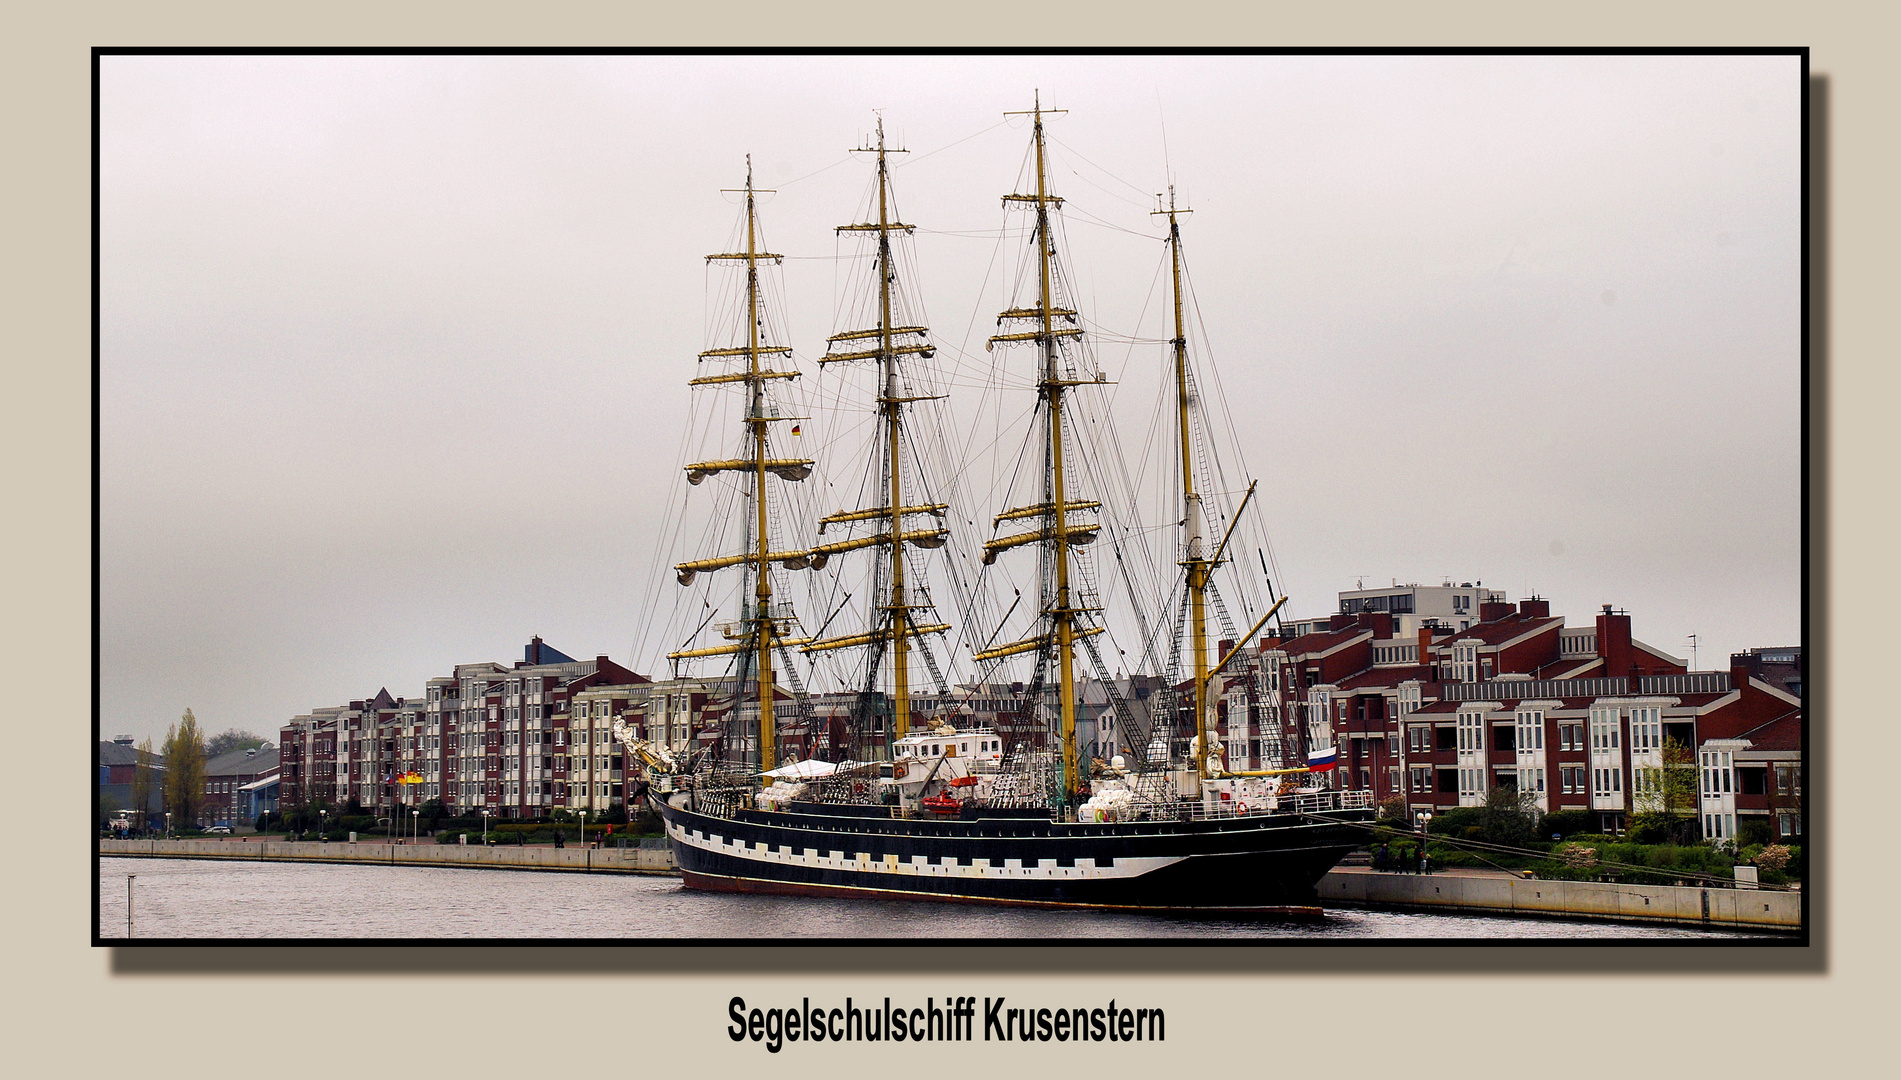 Krusenstern 2